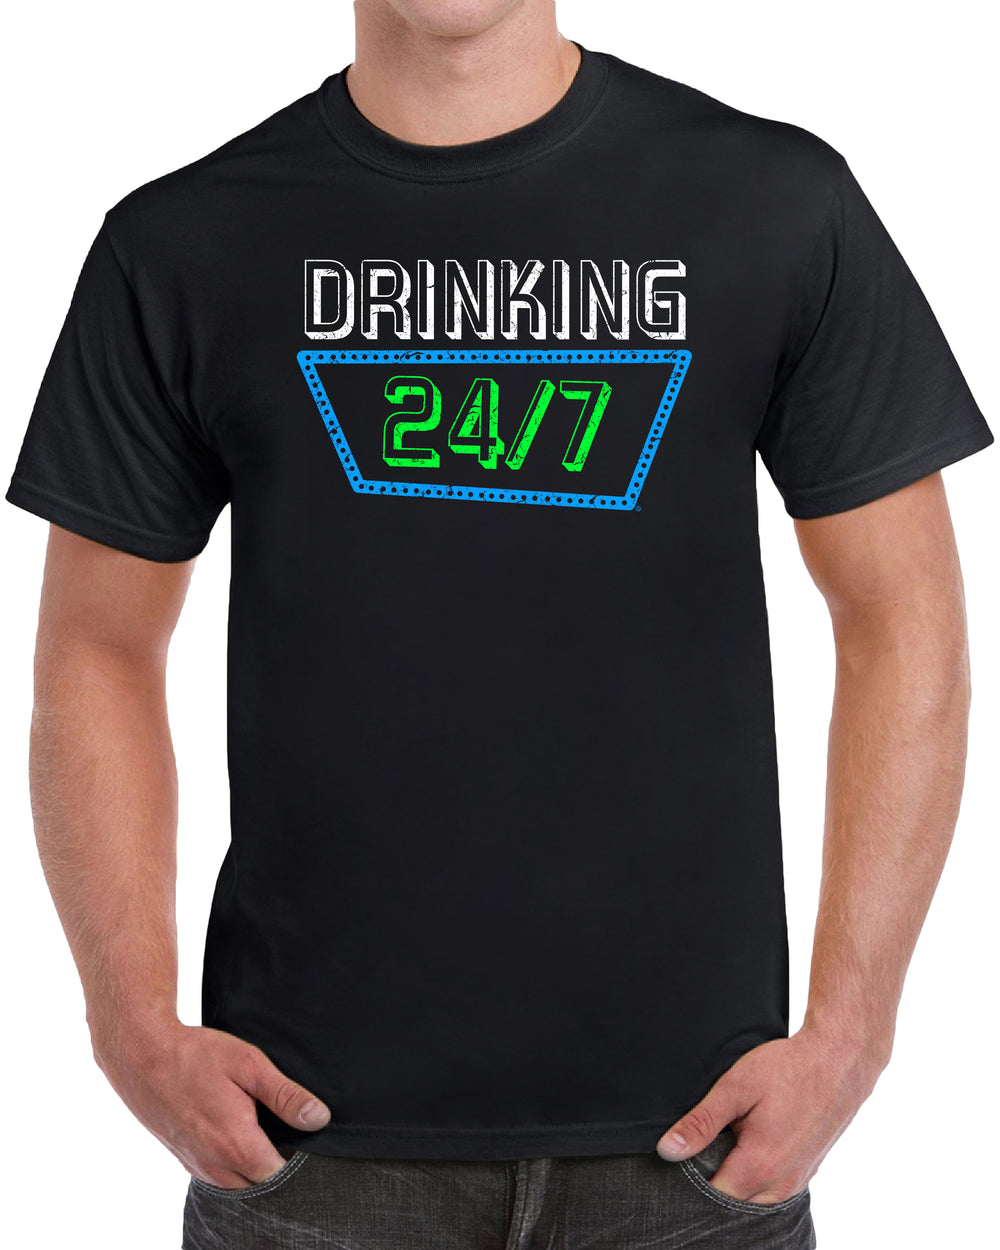 Drinking 24/7 - Distressed Print